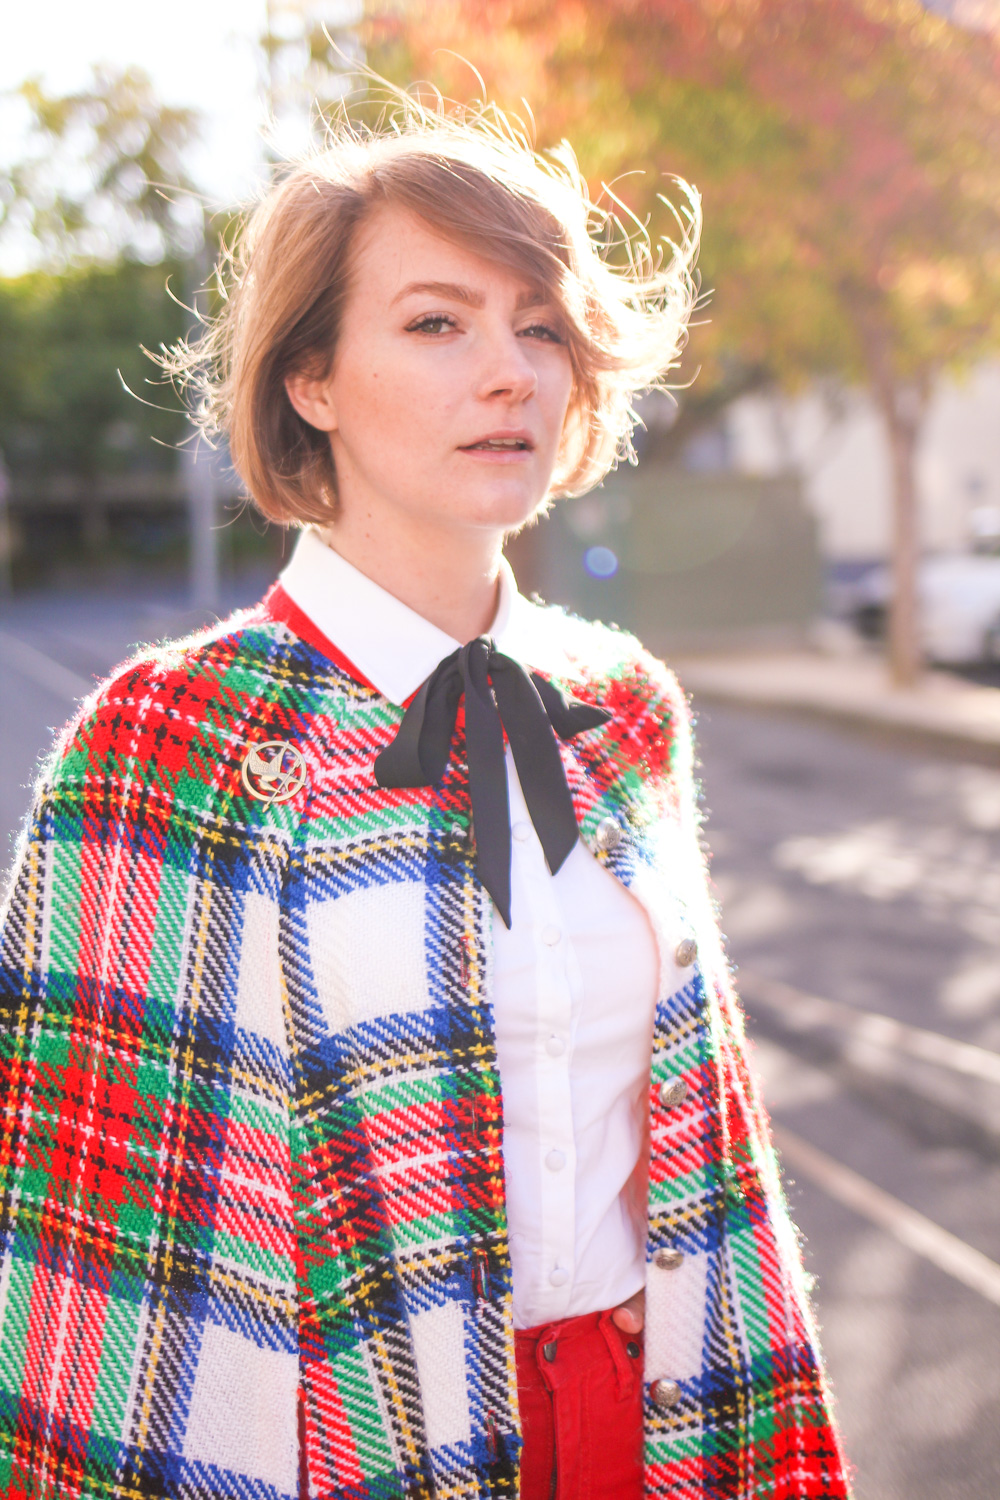 @findingfemme wears tartan cape and red jeans in Ballarat autumn.